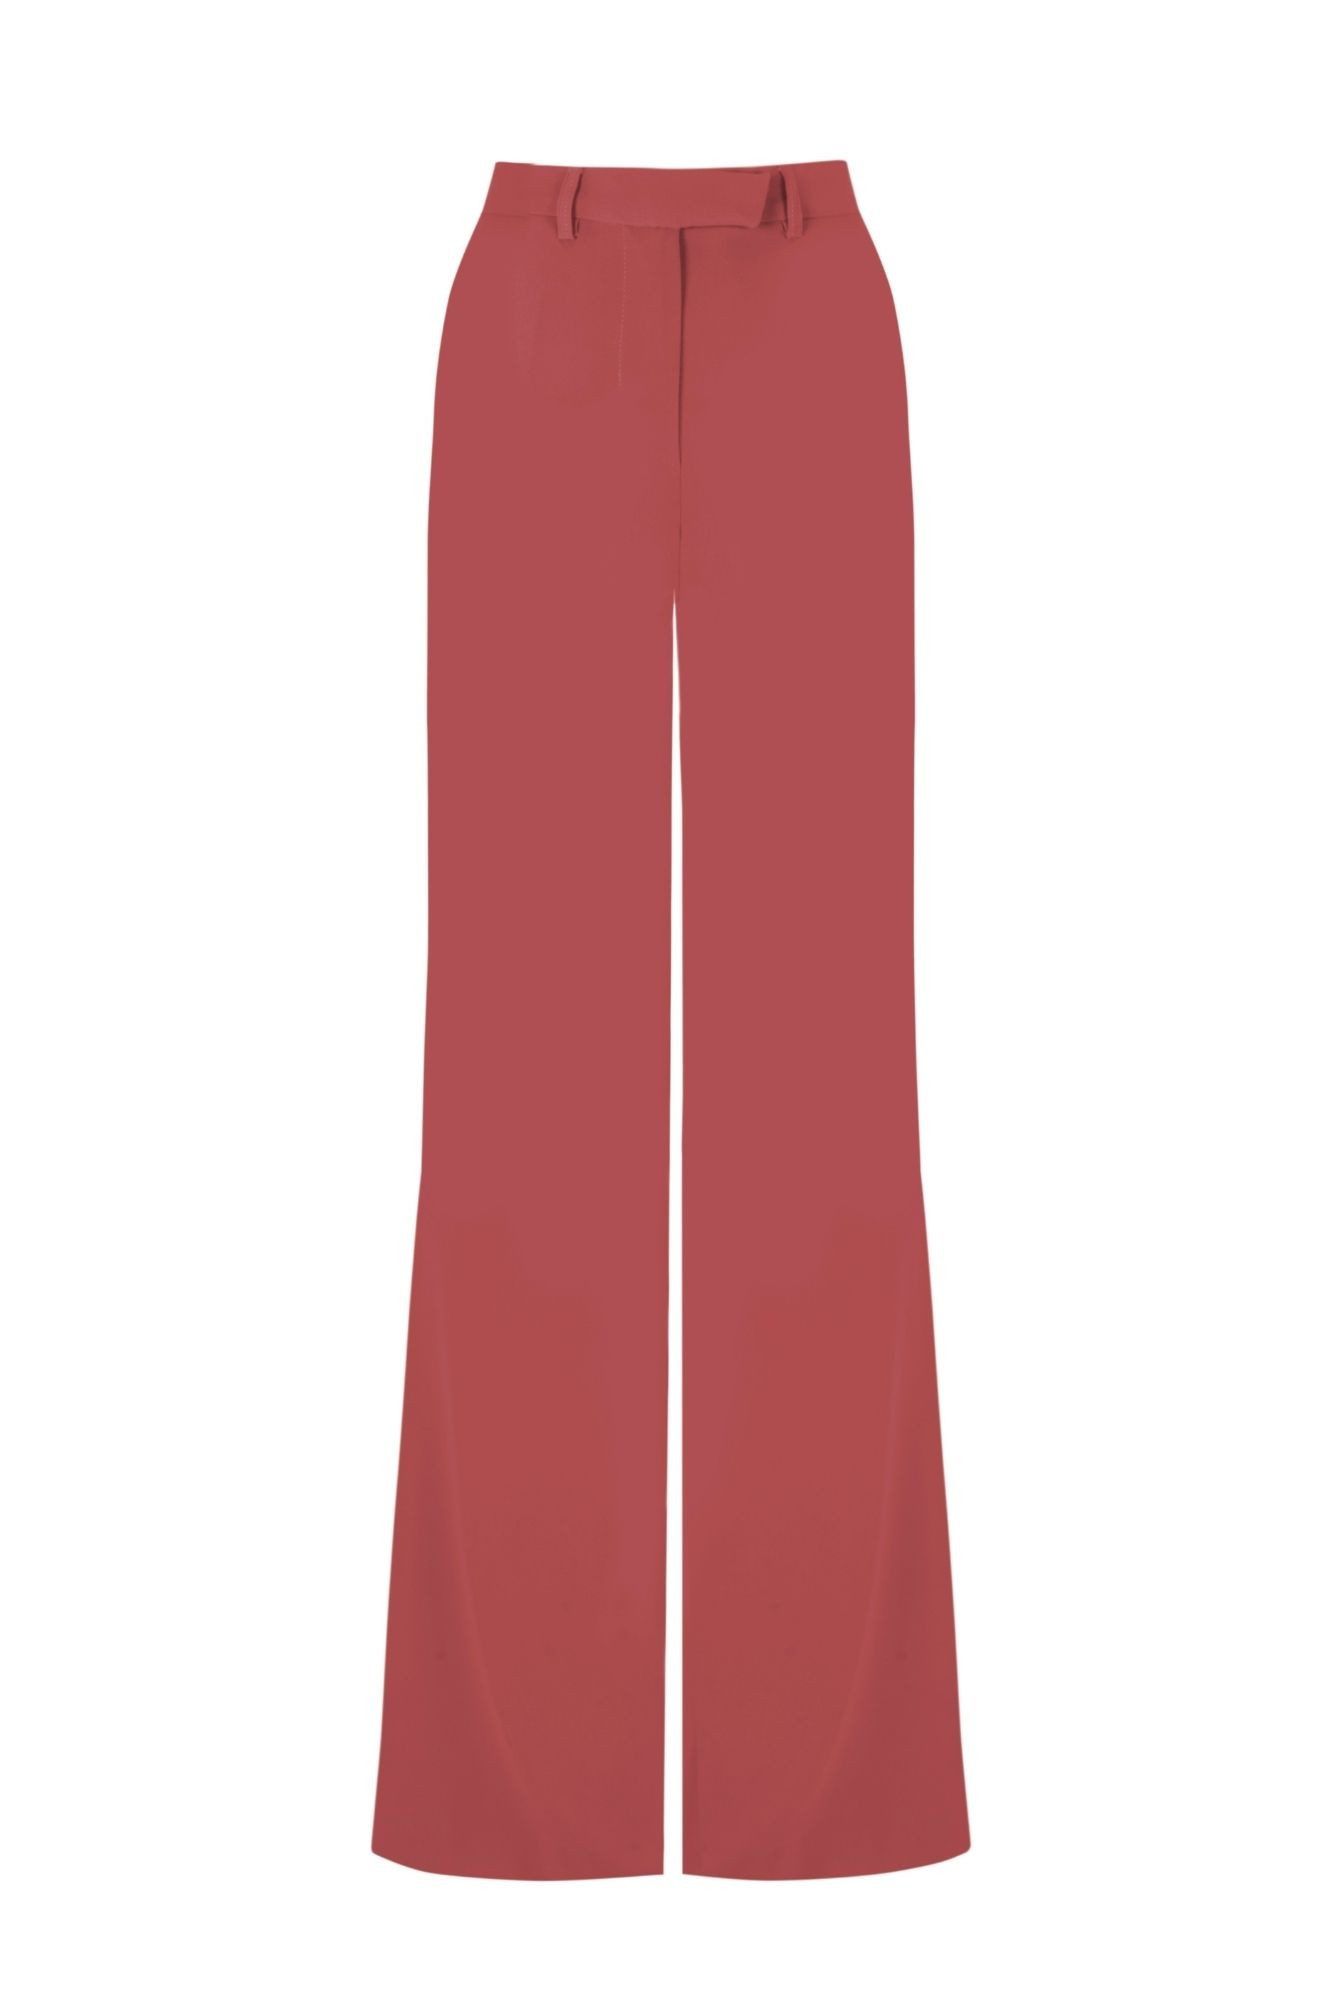 ADRI TERRACOTTA TROUSERS